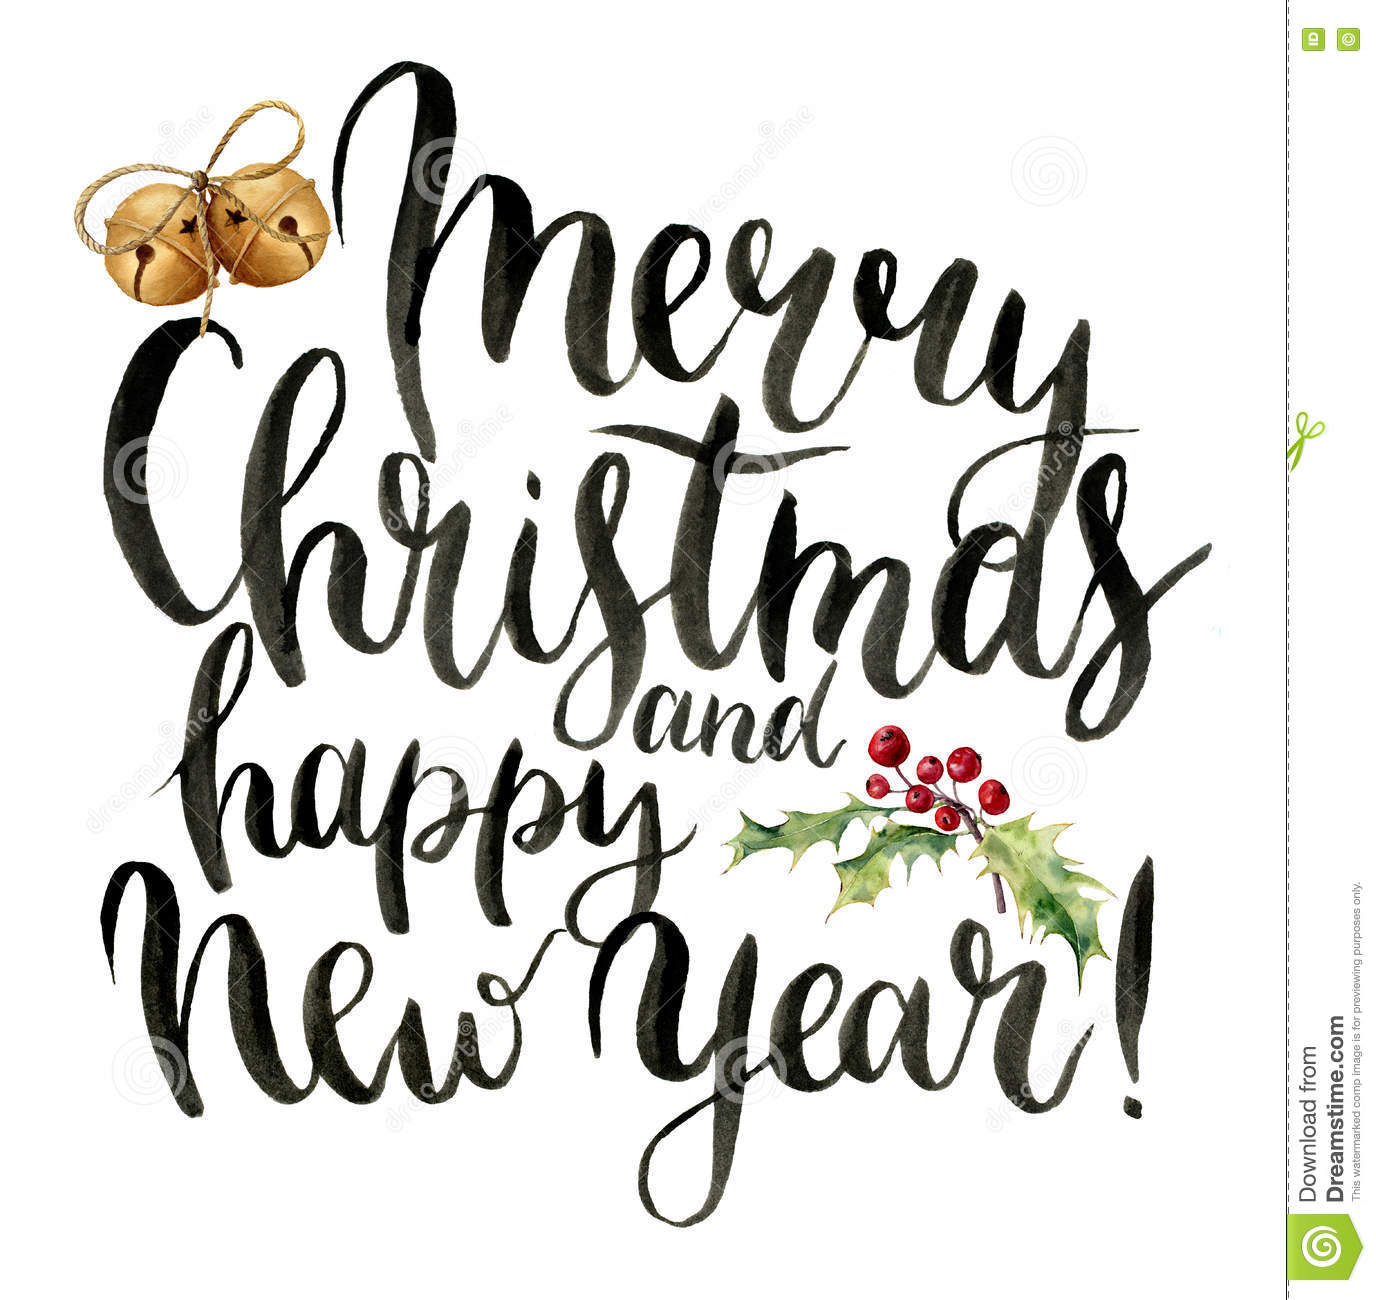 Carte Cadeau Wish Watercolor Print Witn Merry Christmas And Happy New Year